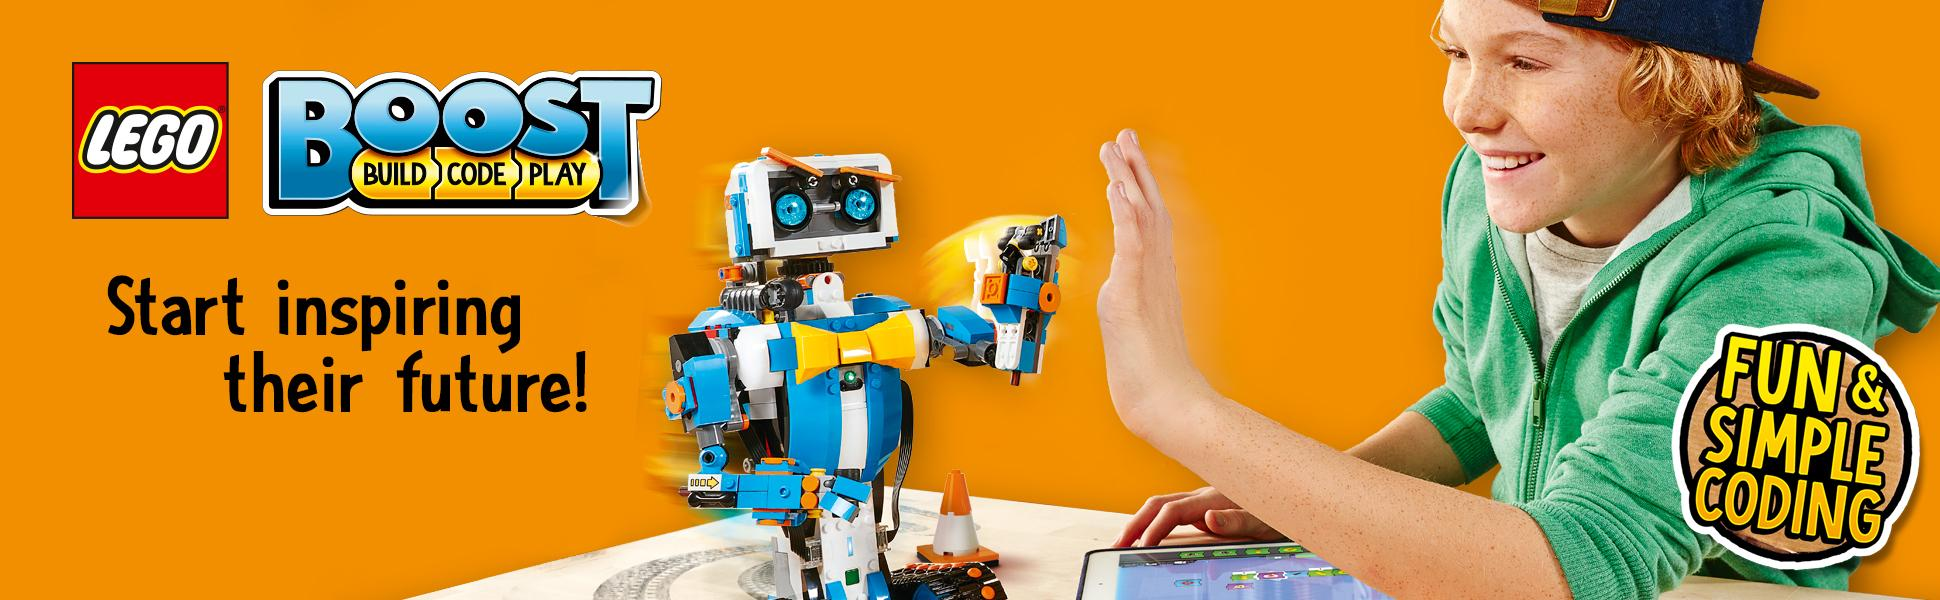 LEGO Boost Creative Toolbox: Fun Robot Building Set and Educational Coding Kit for Kids, Award-Winning STEM Learning Toy